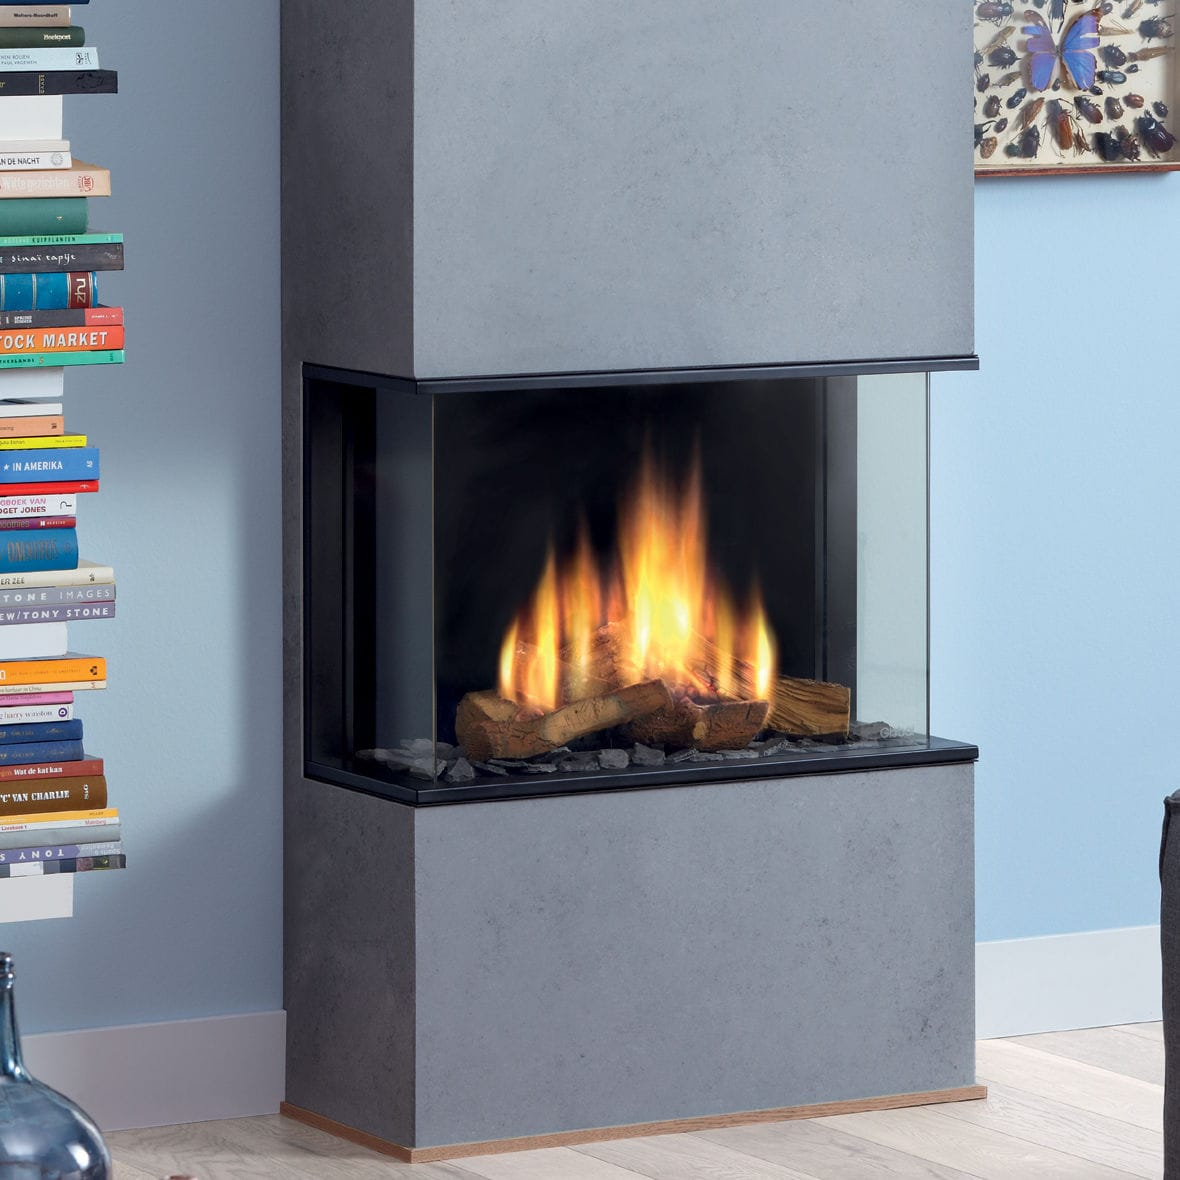 fireplace trs heat gas with sided black corner trim product glo